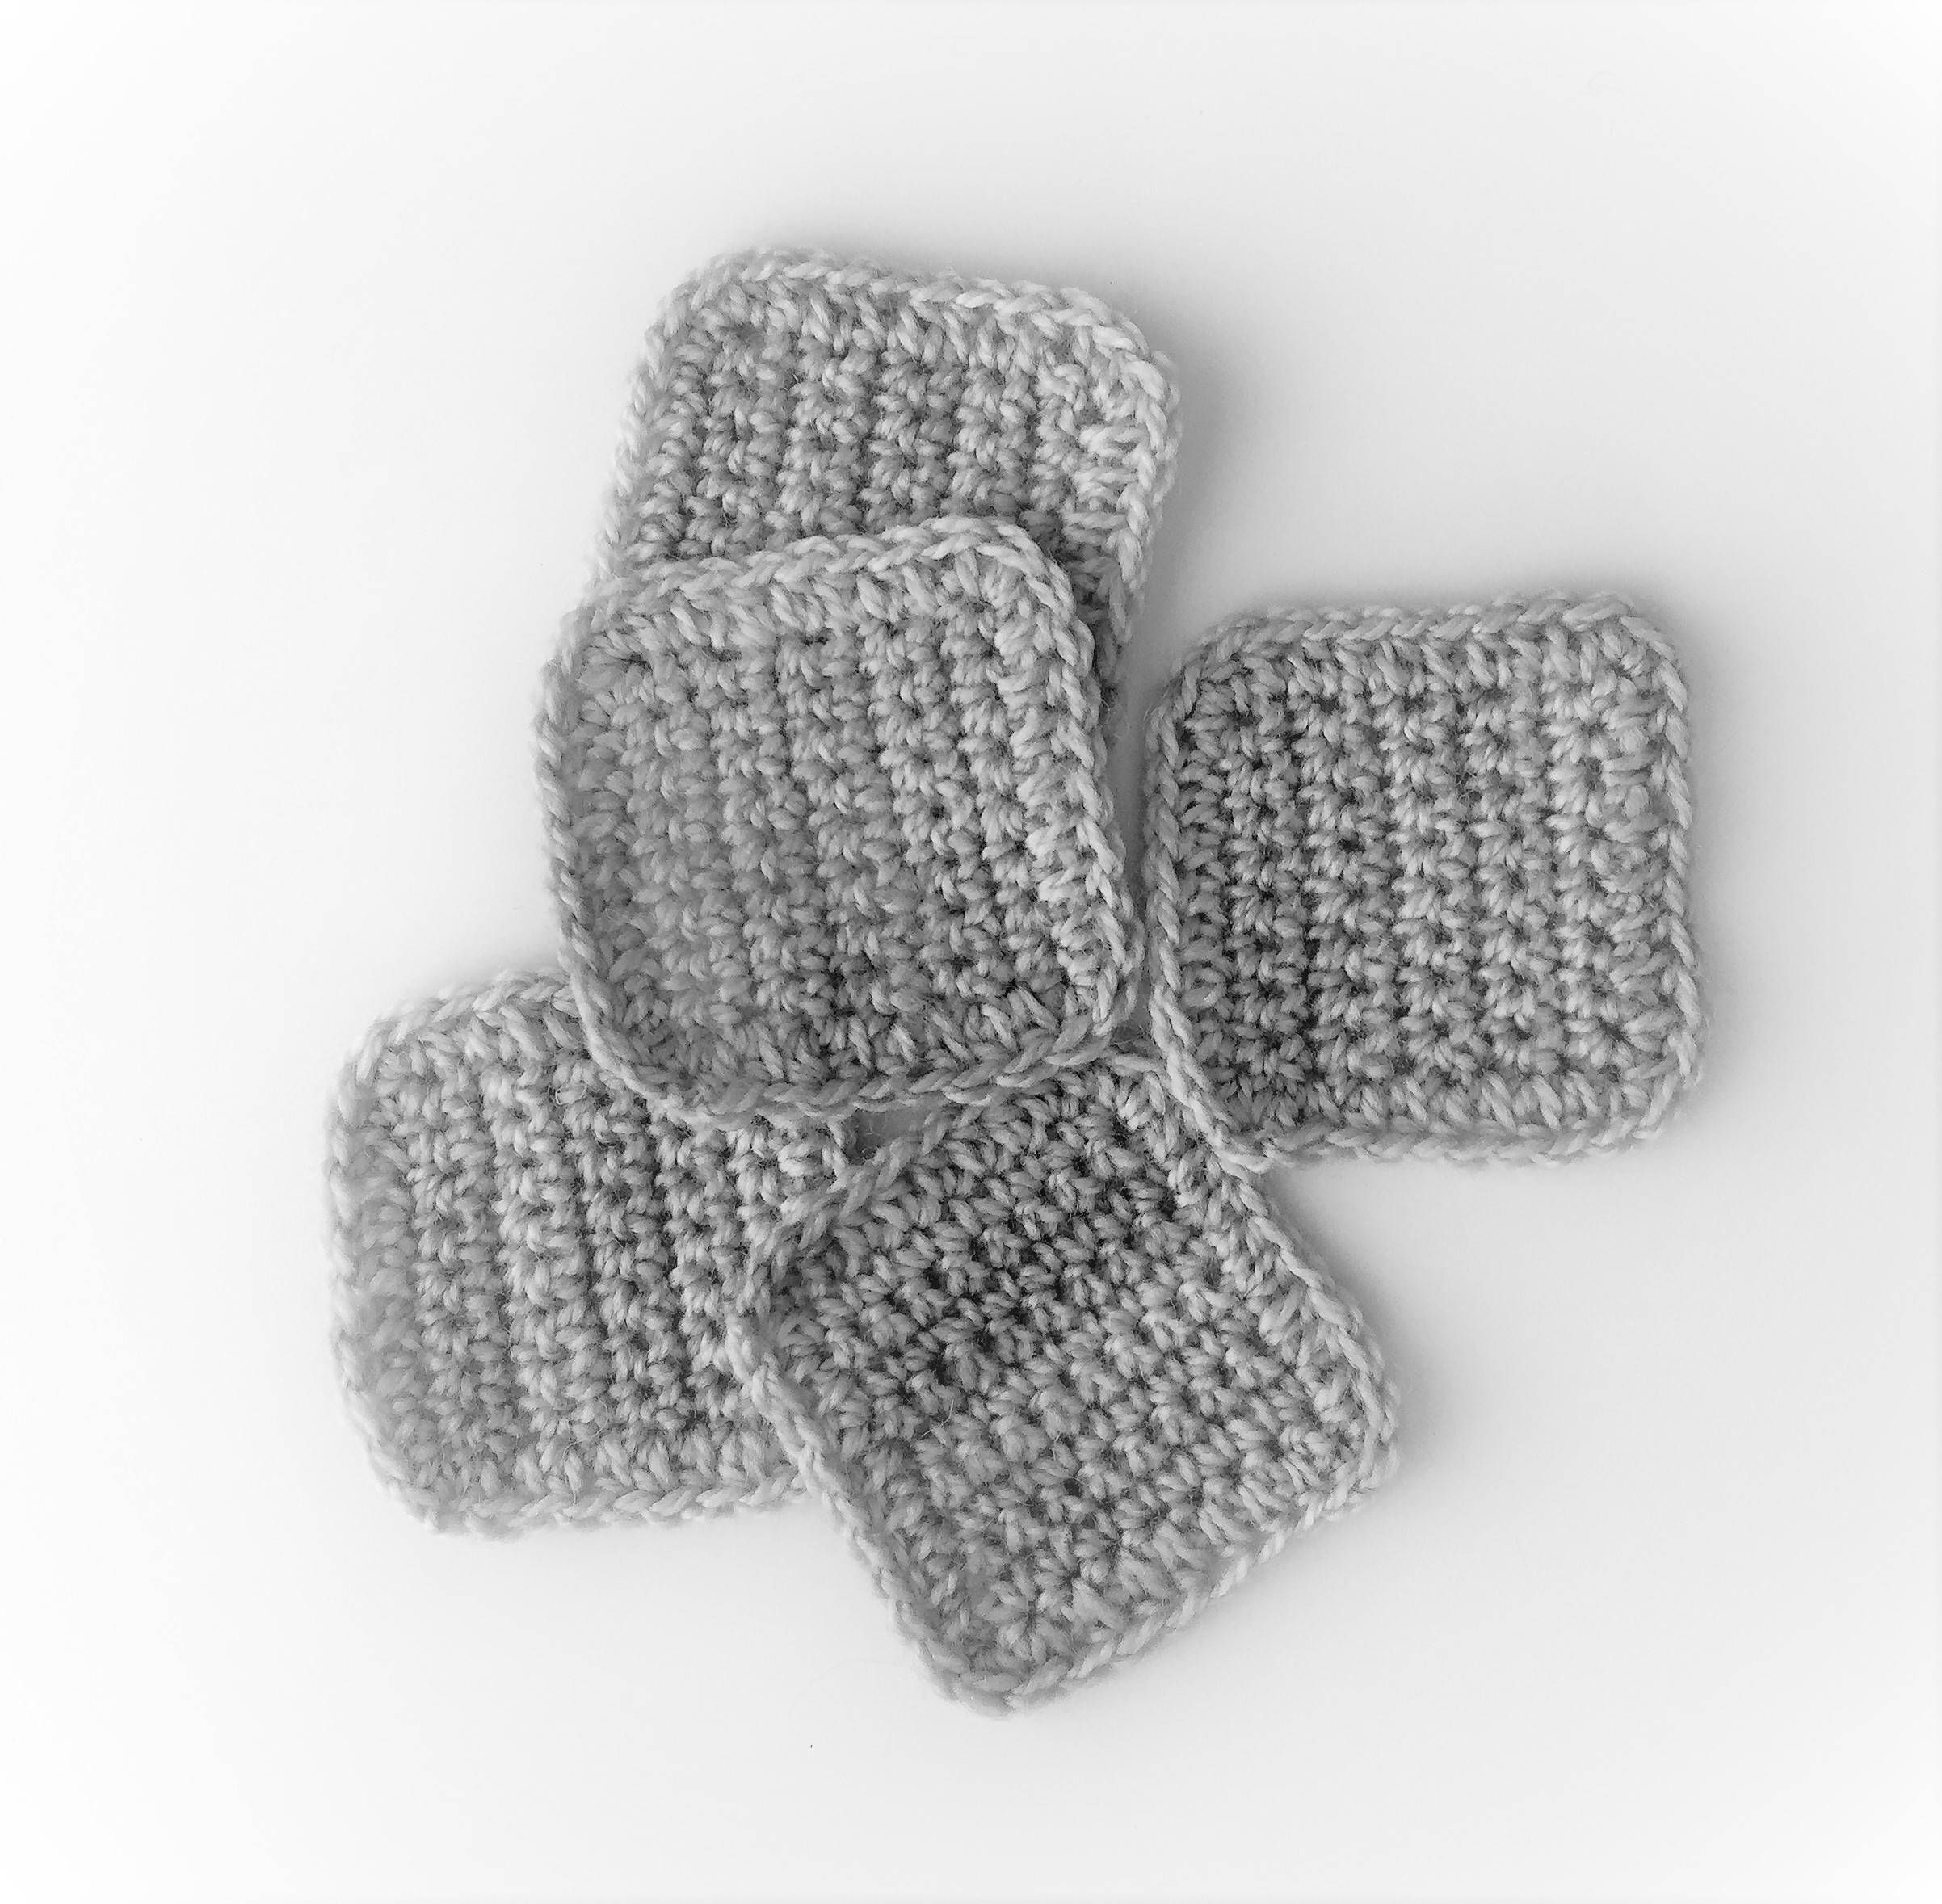 pin crocheted pinterest gd brooches by lillian erin hyperbolic brooch on